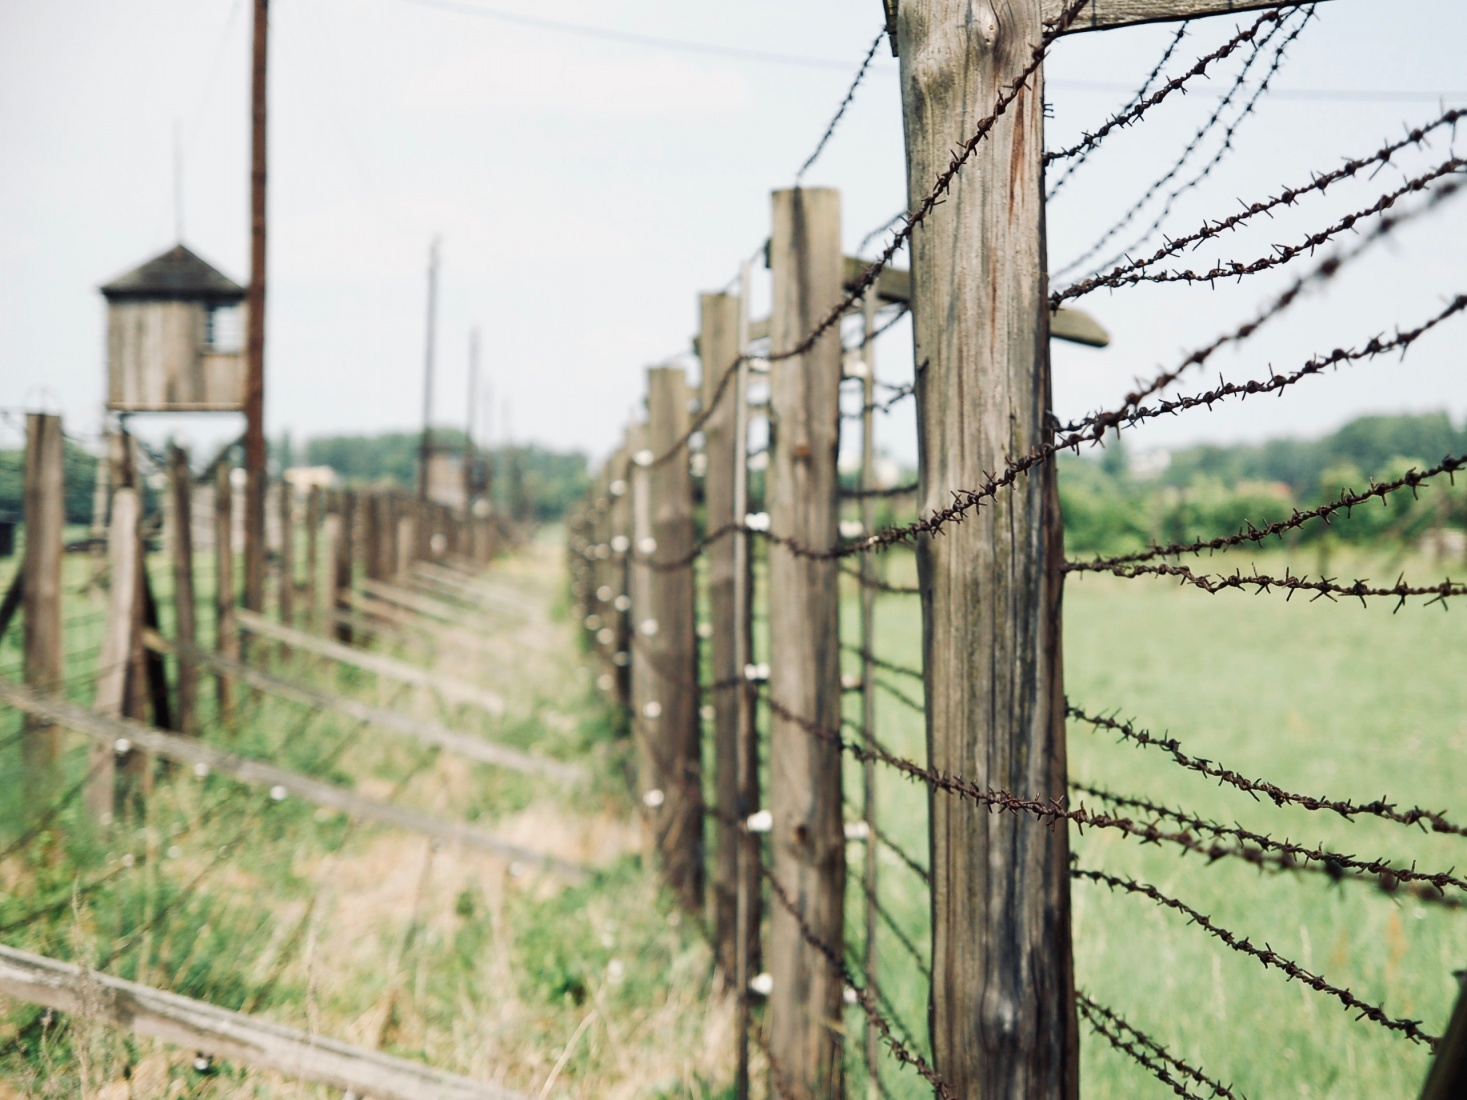 Barbed wire fence at former concentration camp Majdanek, near Lublin, Poland.